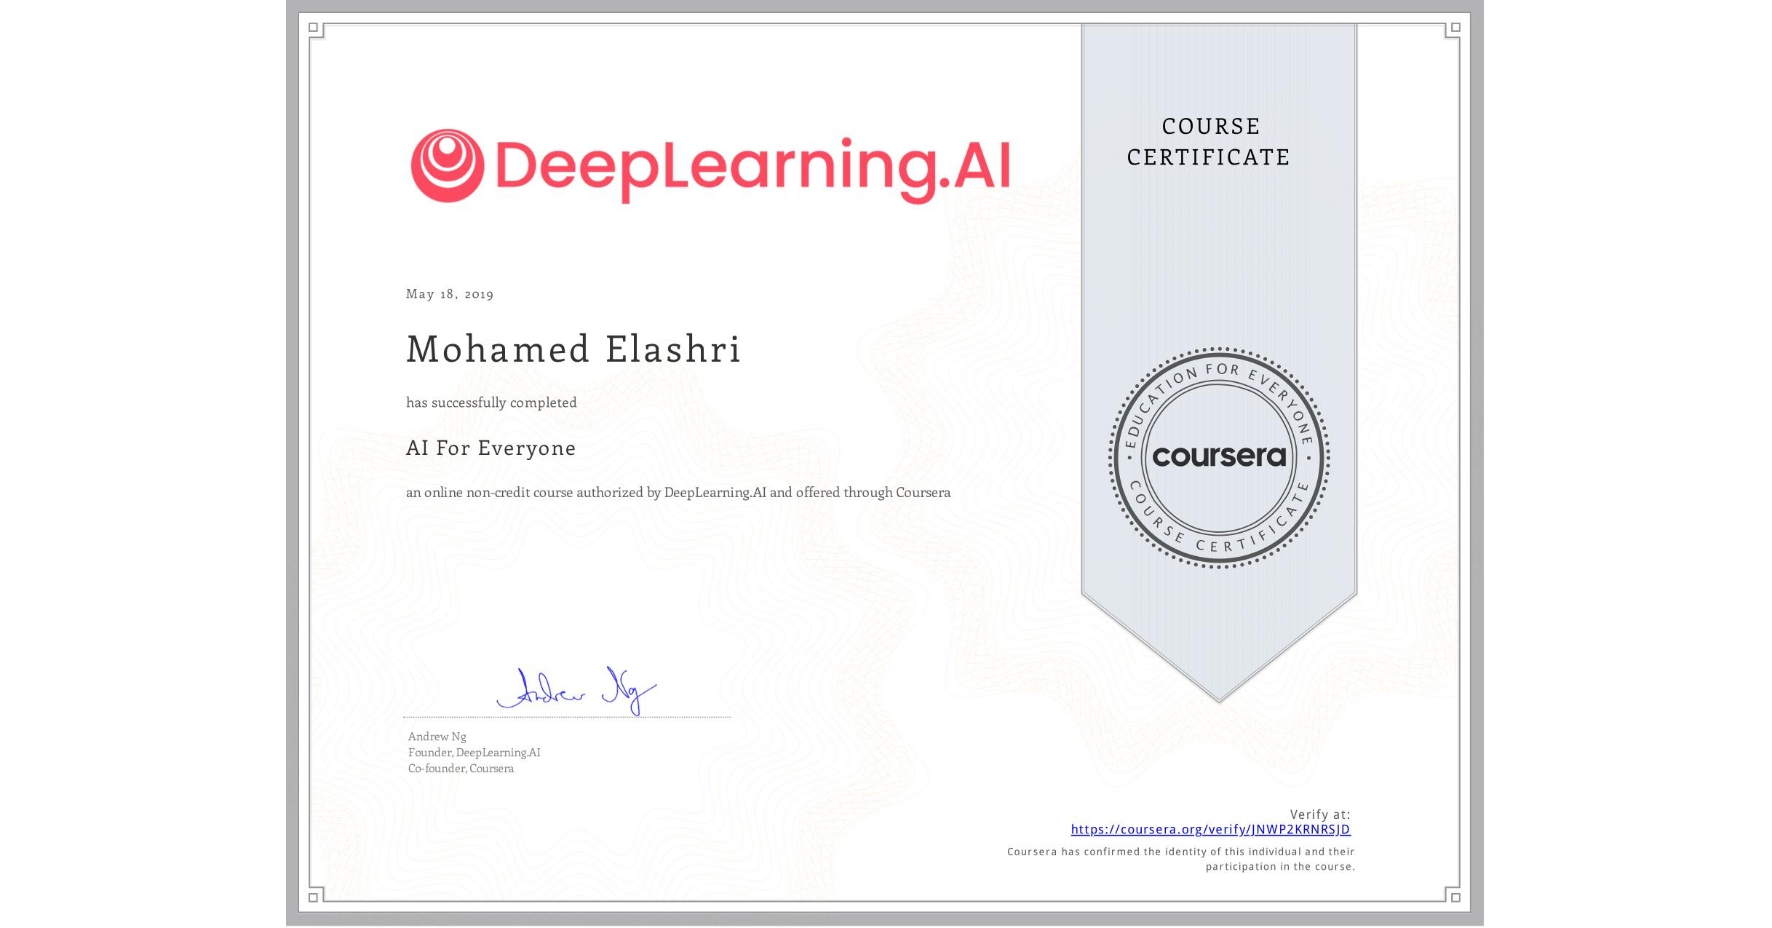 View certificate for Mohamed Elashri, AI For Everyone, an online non-credit course authorized by DeepLearning.AI and offered through Coursera